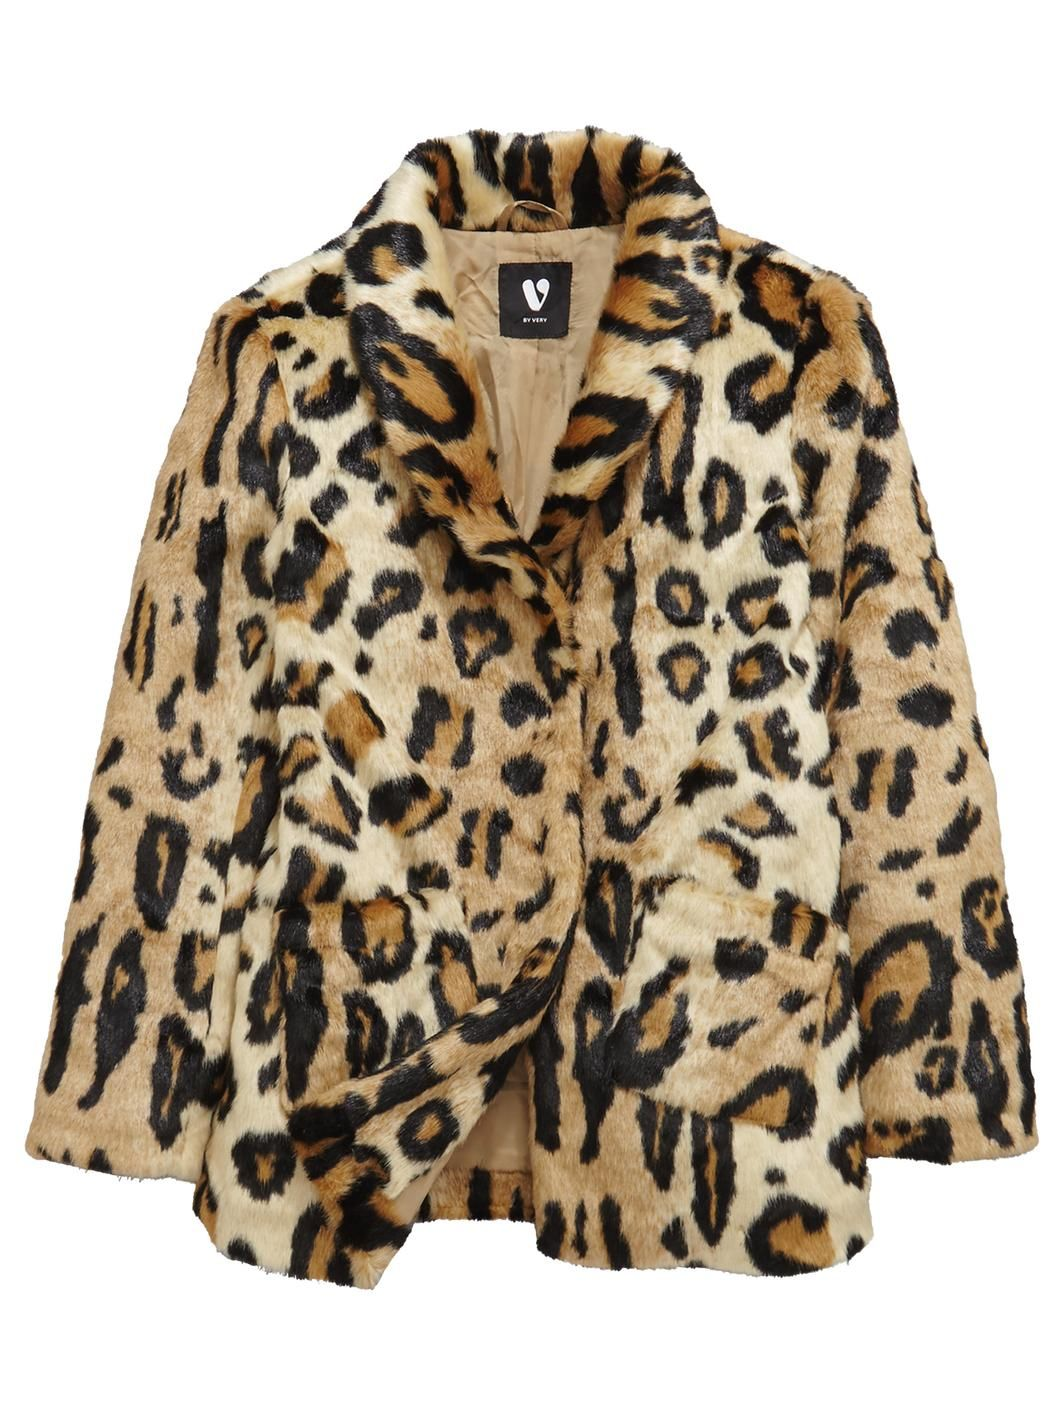 3e3375d0db Pin by Herman Melville on Outer-wear   Brown faux fur coat, Faux fur ...